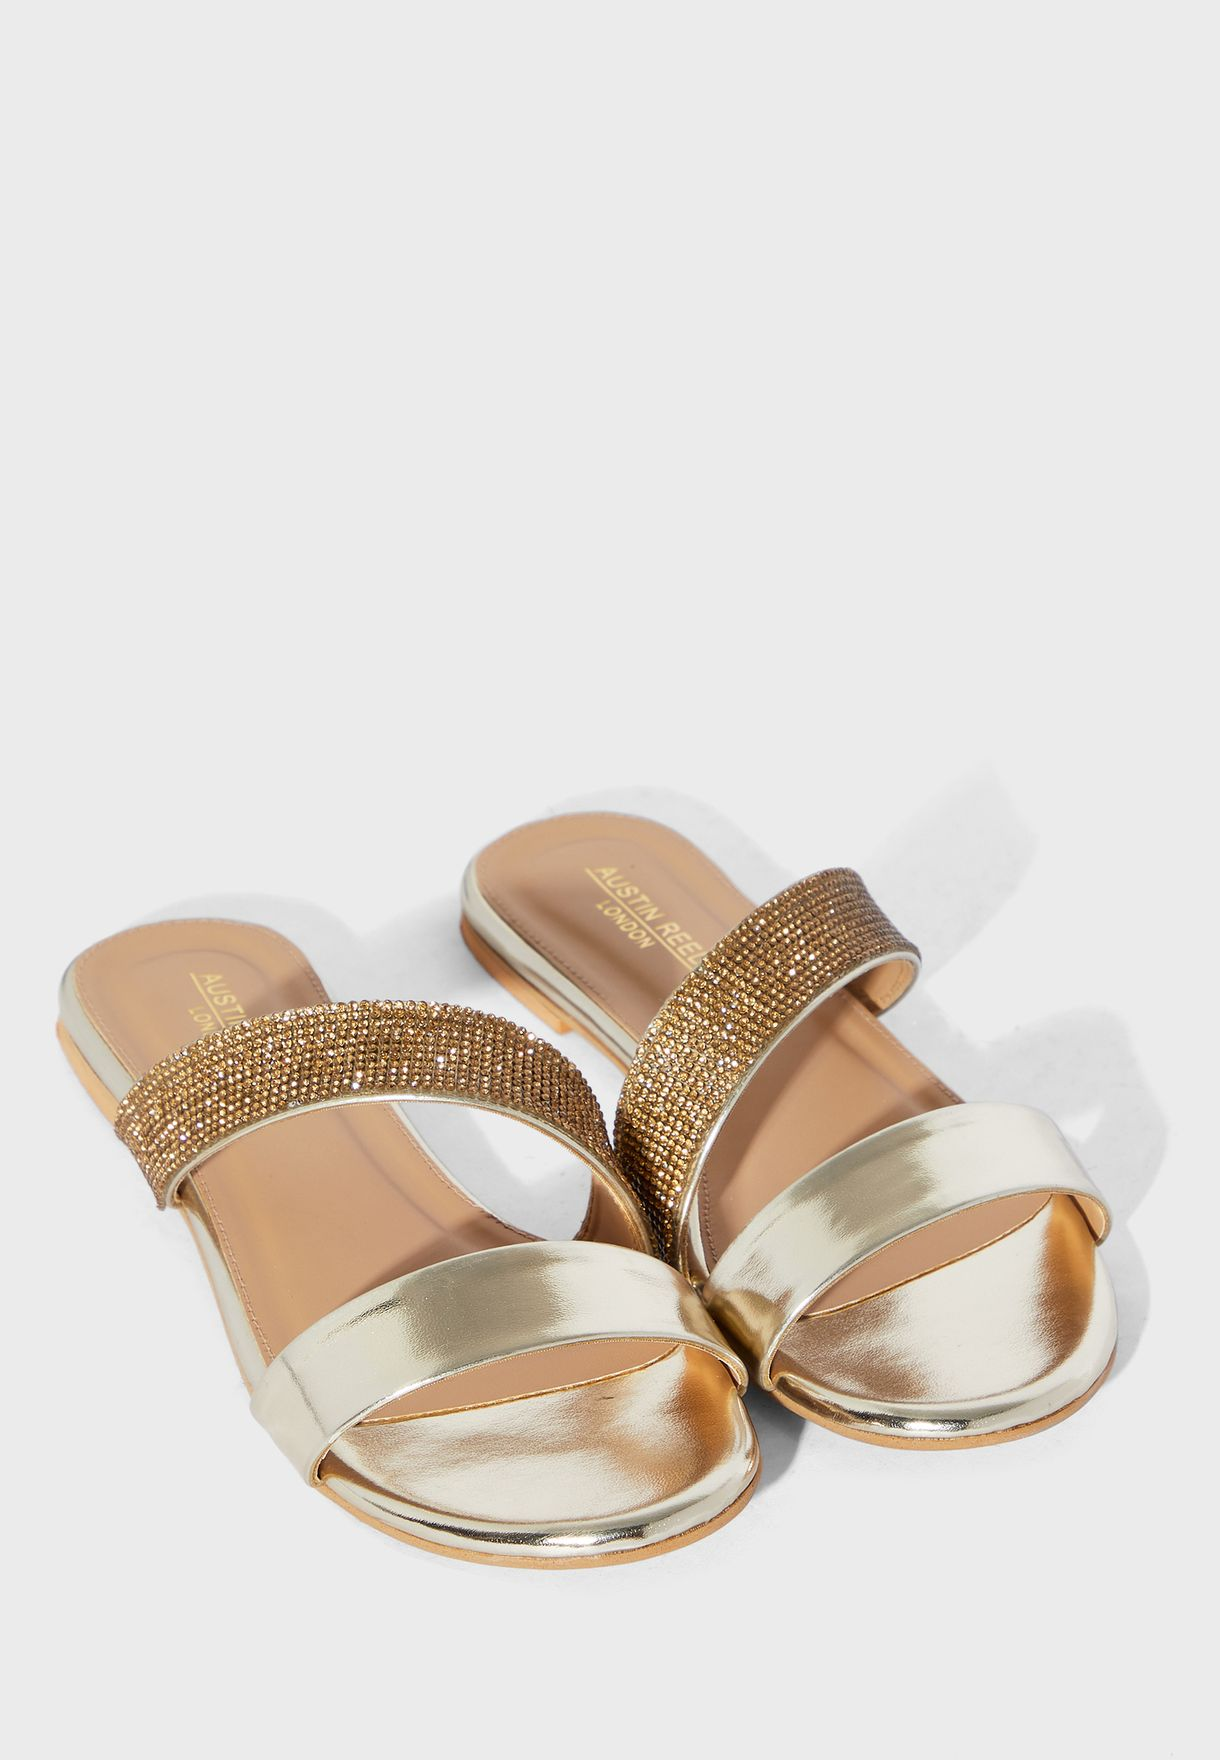 Buy Austin Reed Gold Double Strap Flat Sandal For Women In Manama Other Cities Aulfs13dff